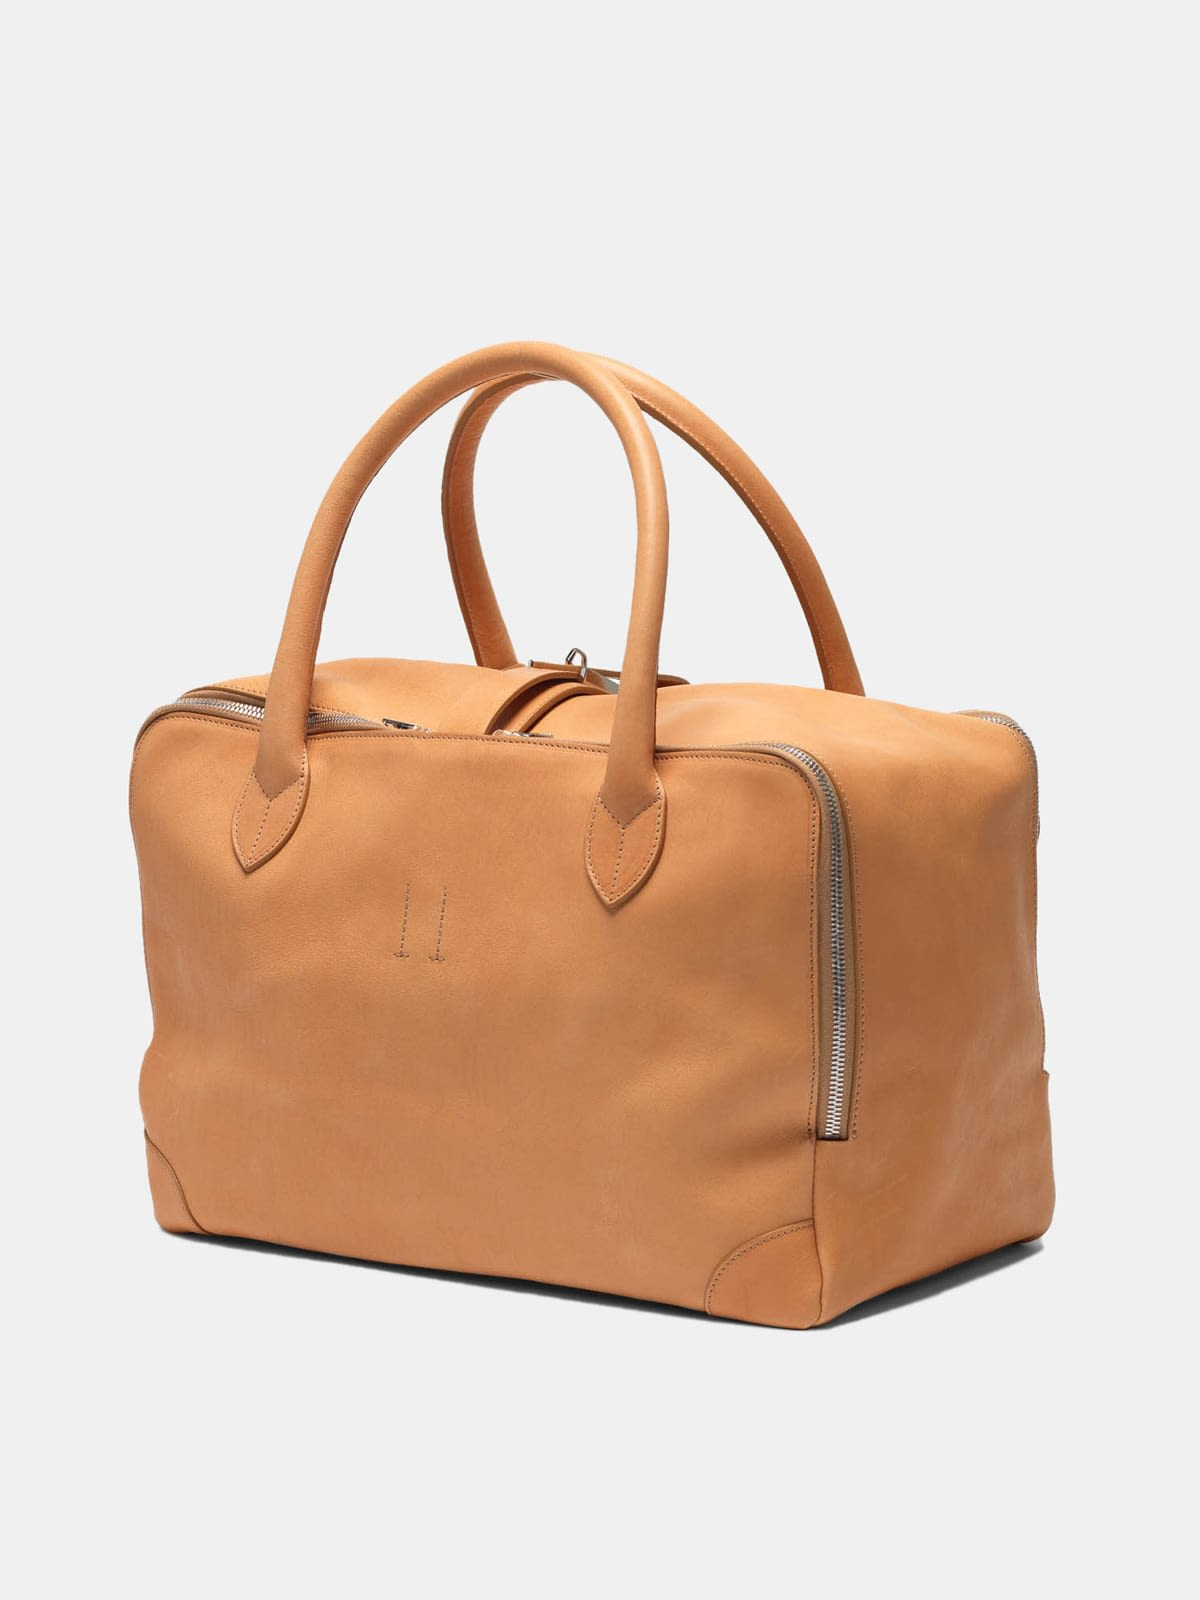 Equipage bag in pebbled leather